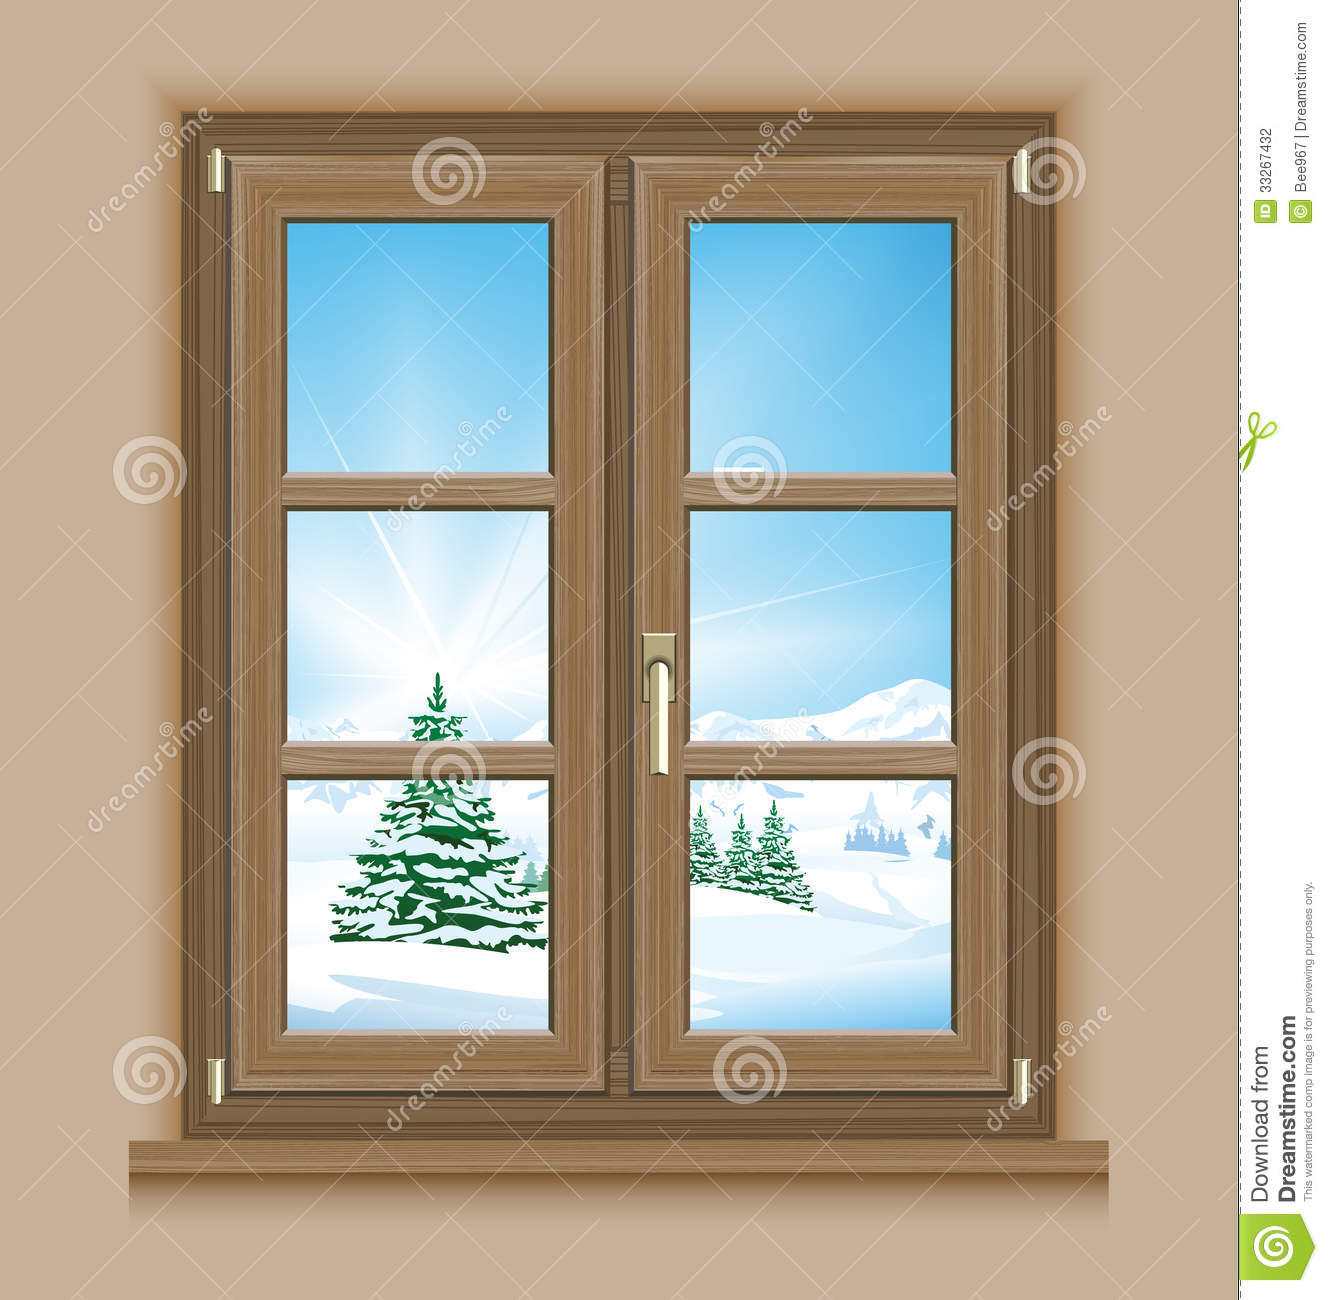 Window winter scene stock photo. Image of wintry, window - 33267432 for Outside Window Clipart  146hul